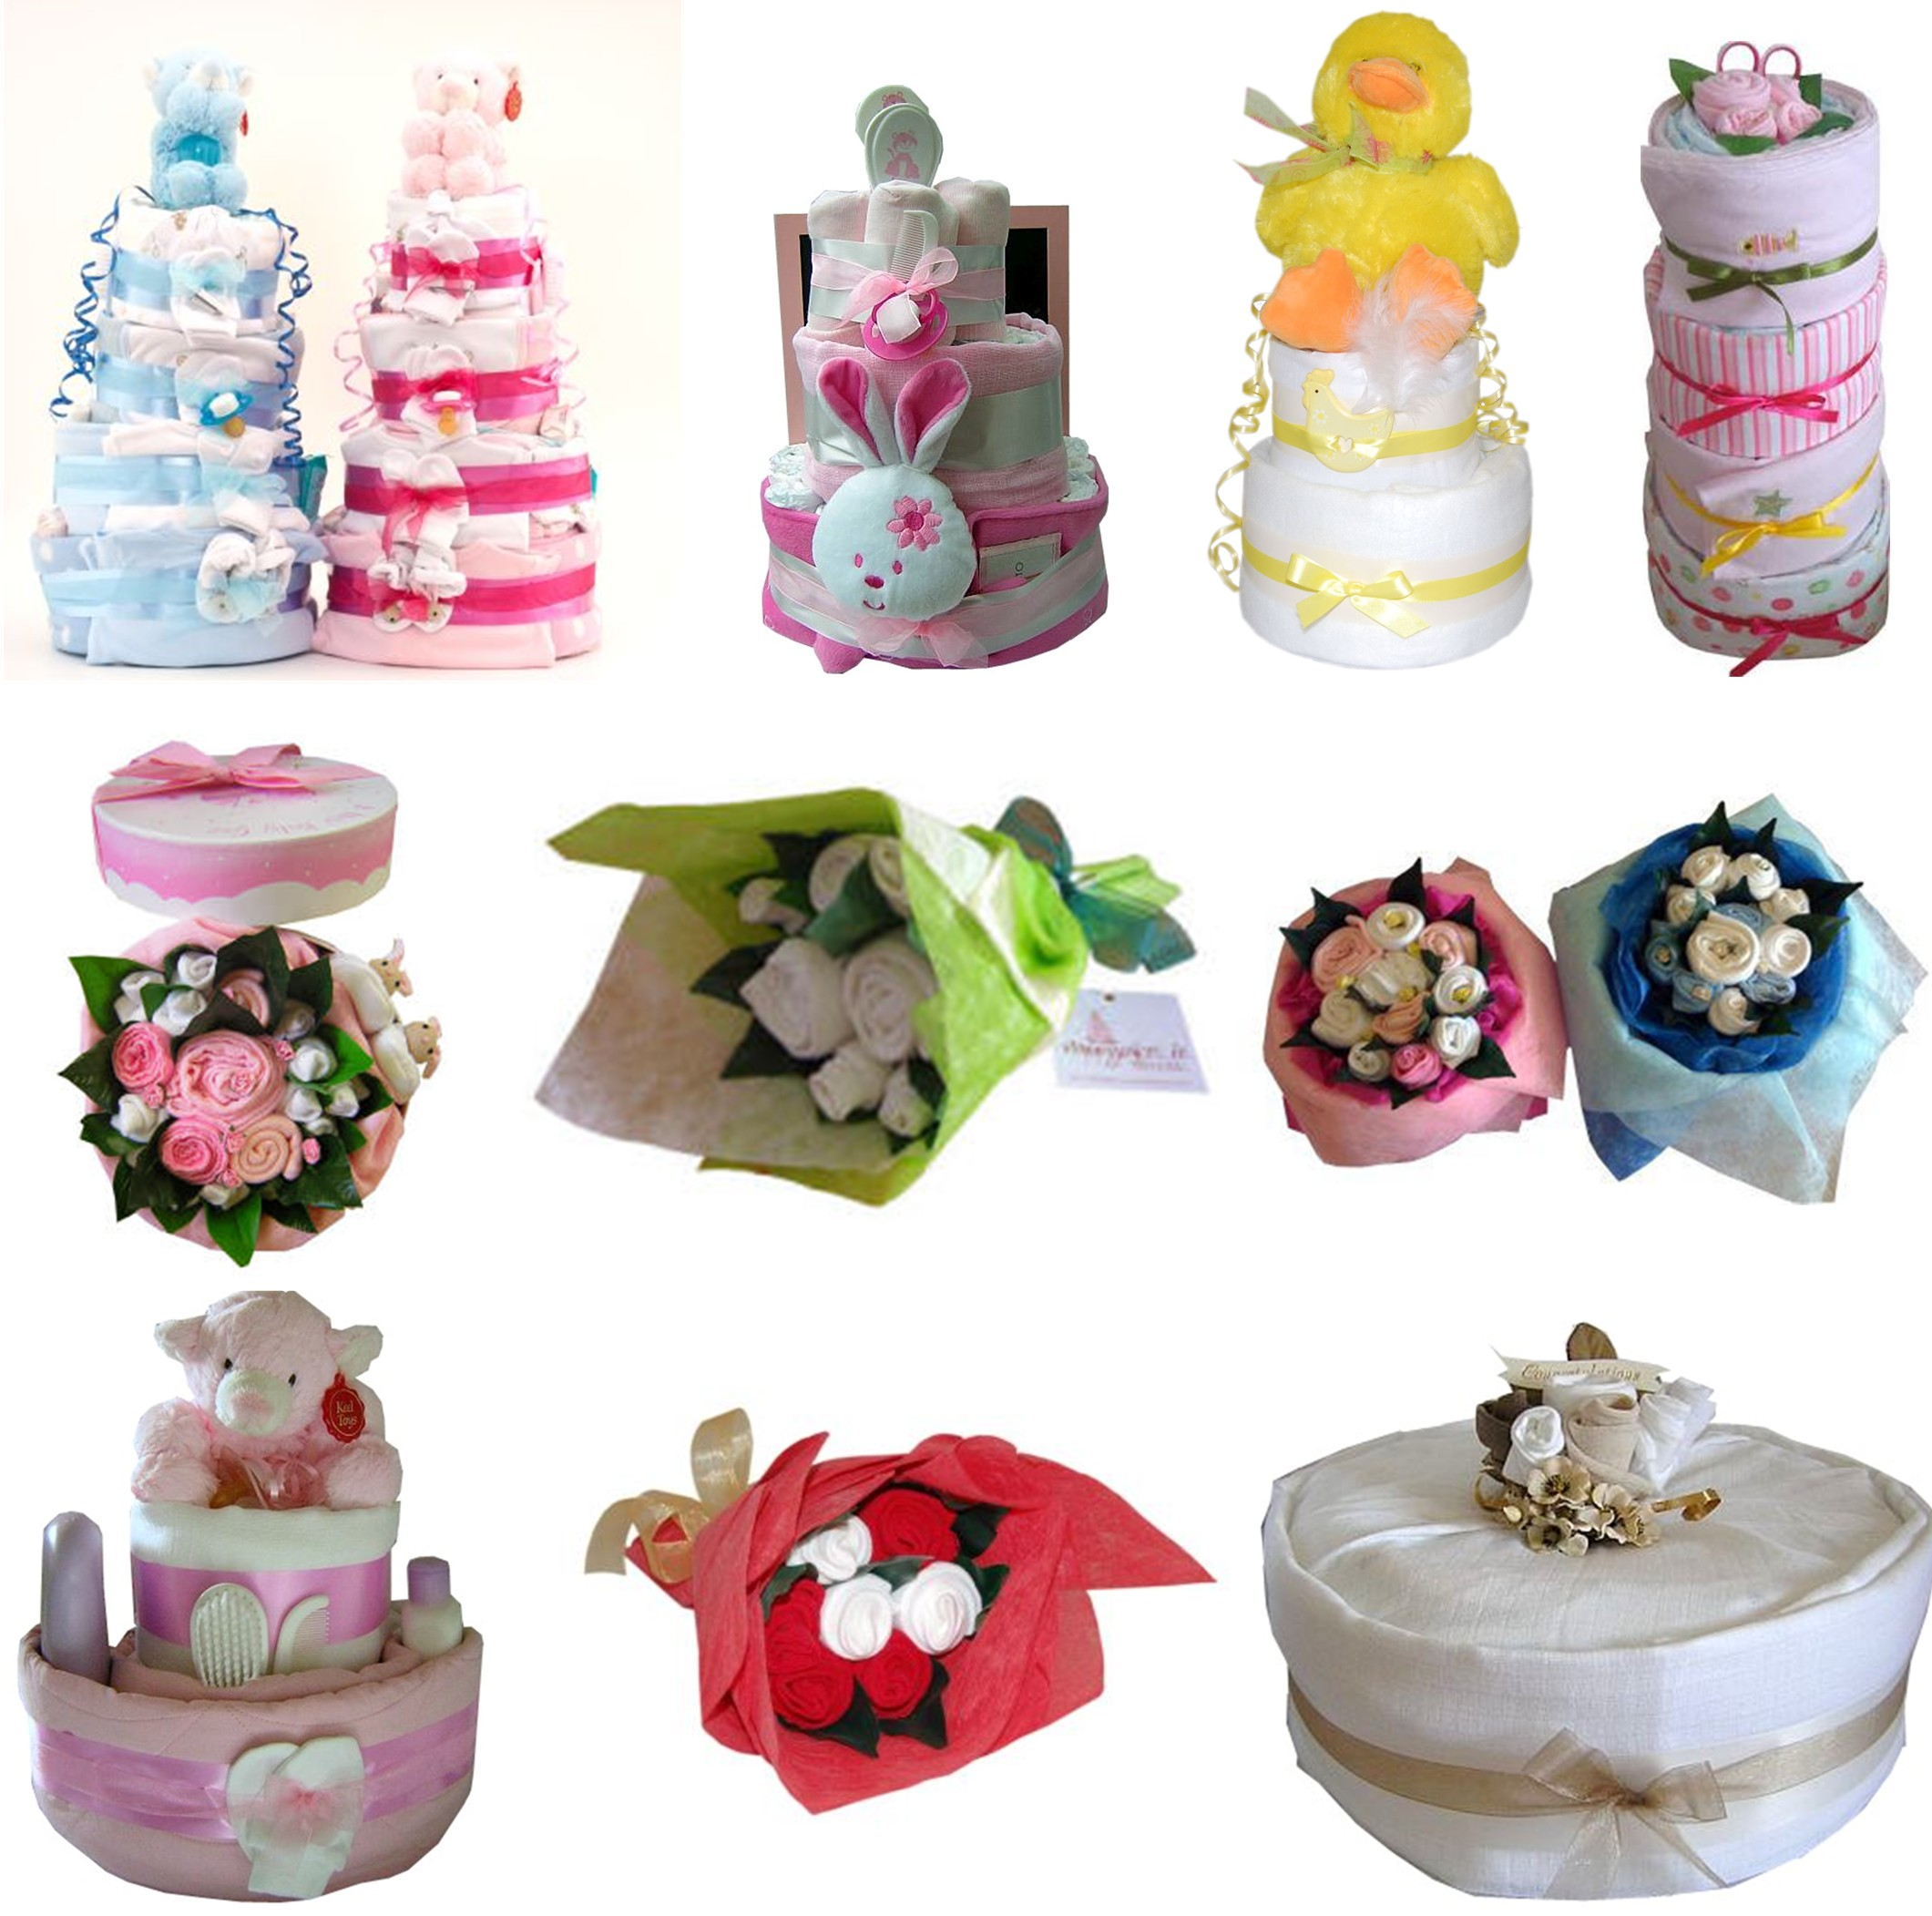 Baby Gifts Delivered Ireland : Nappy cake baby gifts free shipping on selected